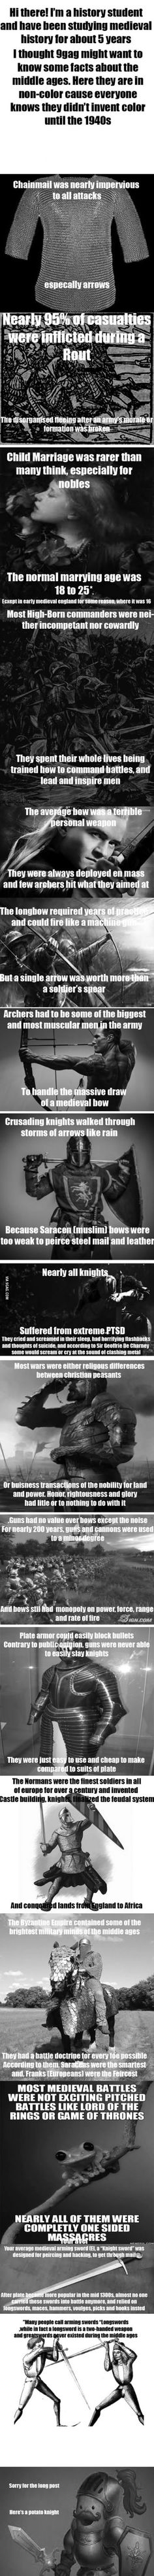 Here are some facts about the Middle Ages most people don't know. Enjoy!